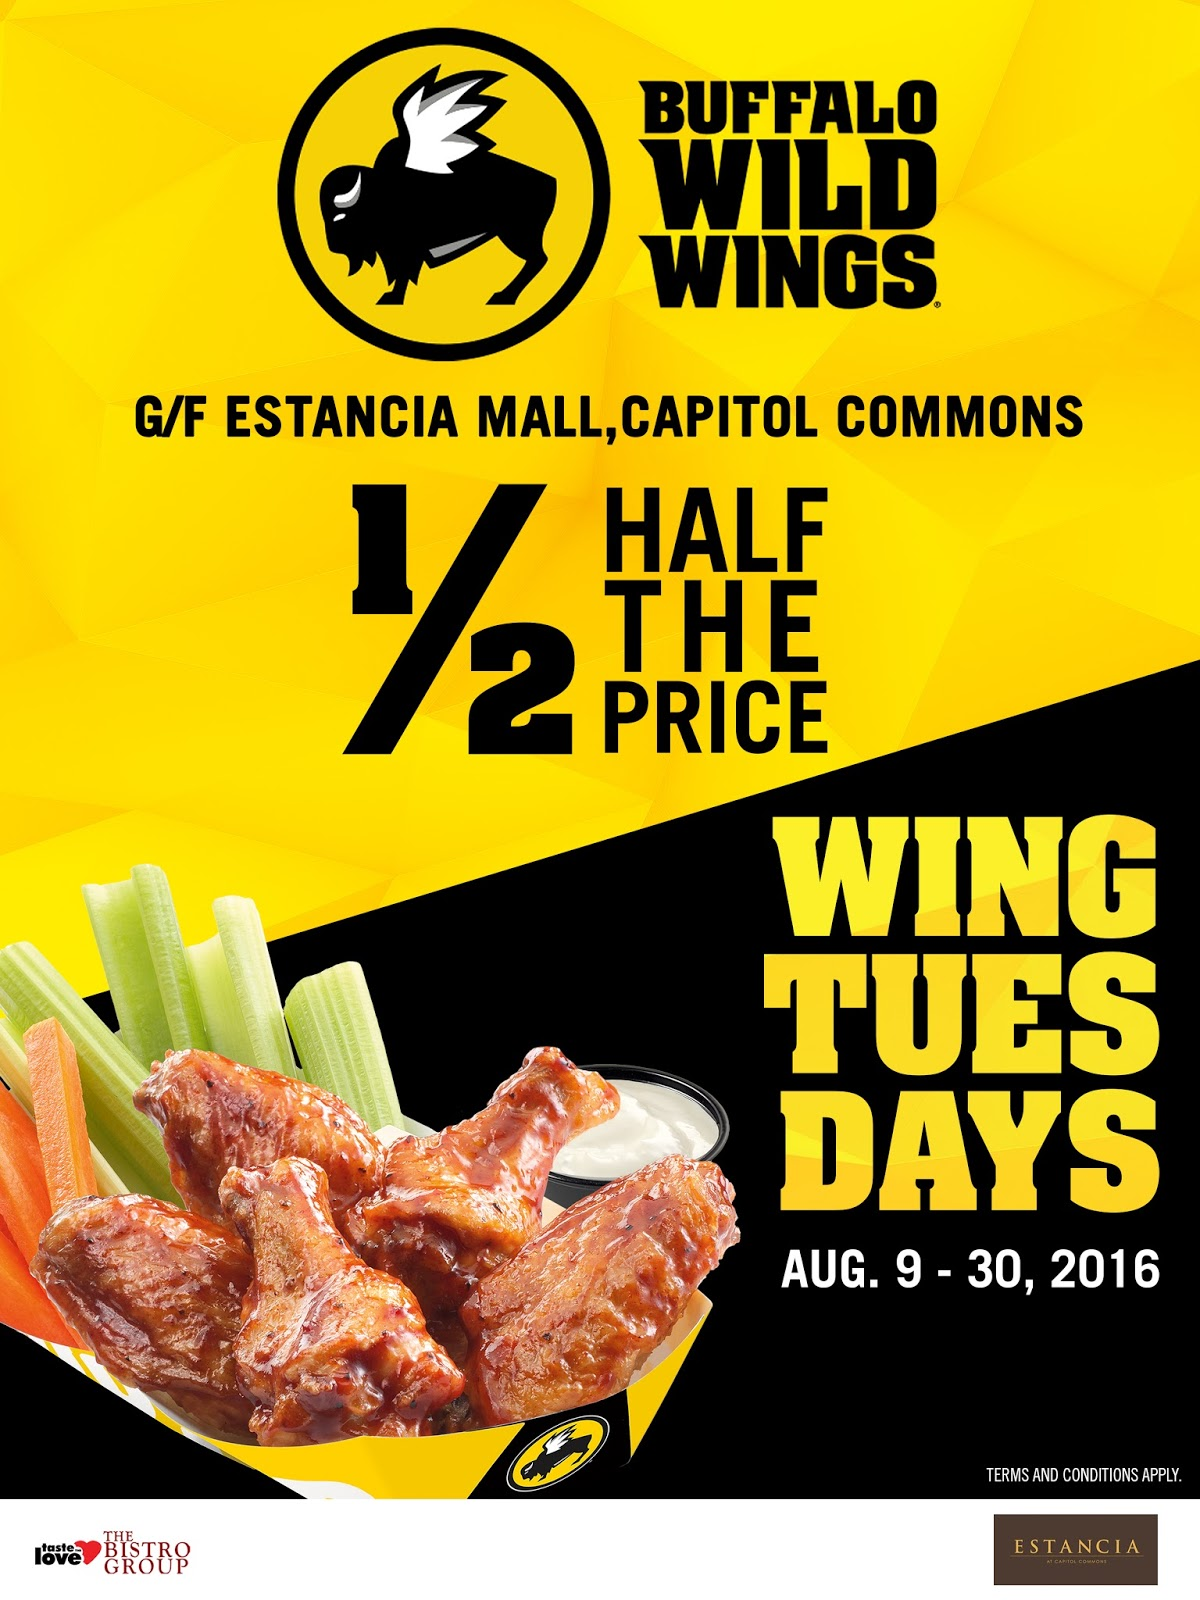 Tuesday wing specials are out at Buffalo Wild Wings, shift to boneless aimed at boosting profit. Buffalo Wild Wings said it paid $ a pound for traditional wings during the quarter, up 6 percent from a year ago and 3 cents a pound higher than company had forecast earlier this year. The price was the same as the first three months of the year, a break from the seasonal decline in wing prices that typically .